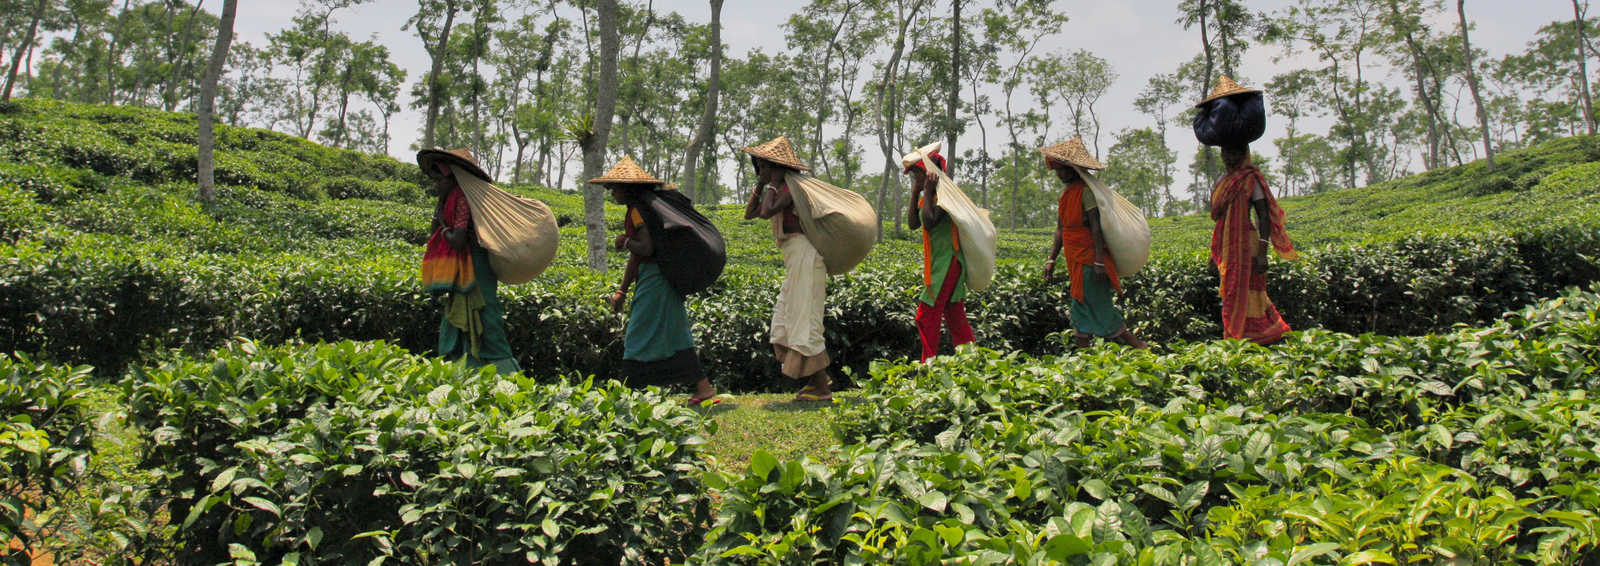 A group of women carrying tea leaves on their backs in a tea garden in Srimangal in Moulvibazar district